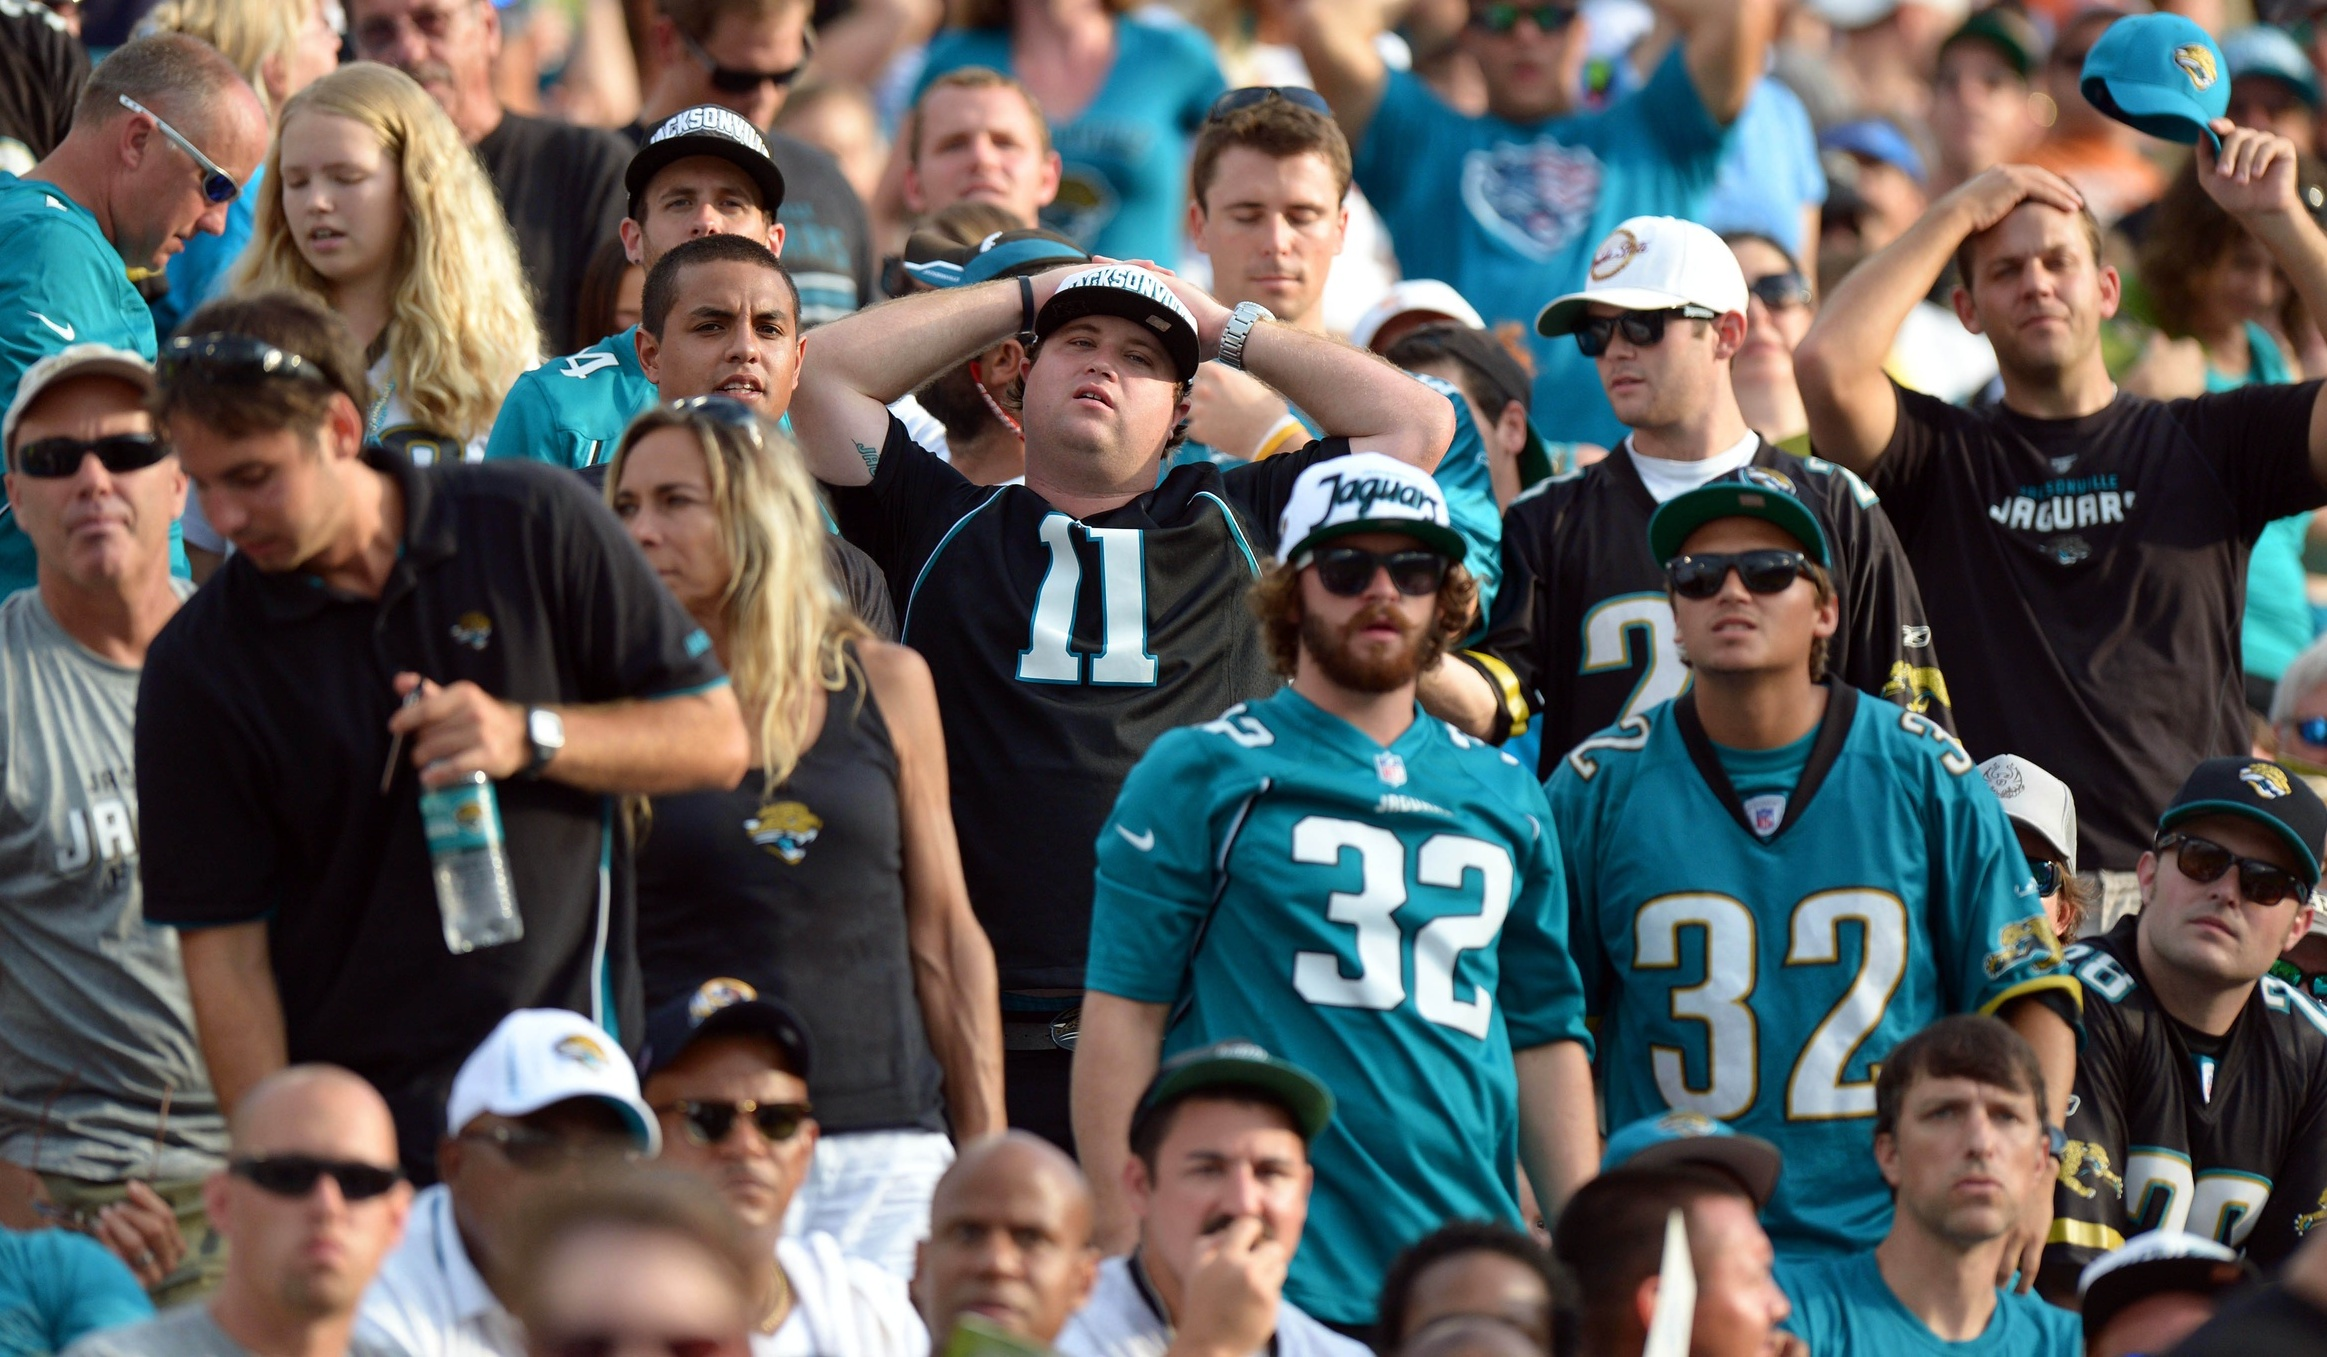 These Jaguars fans could use a beer.